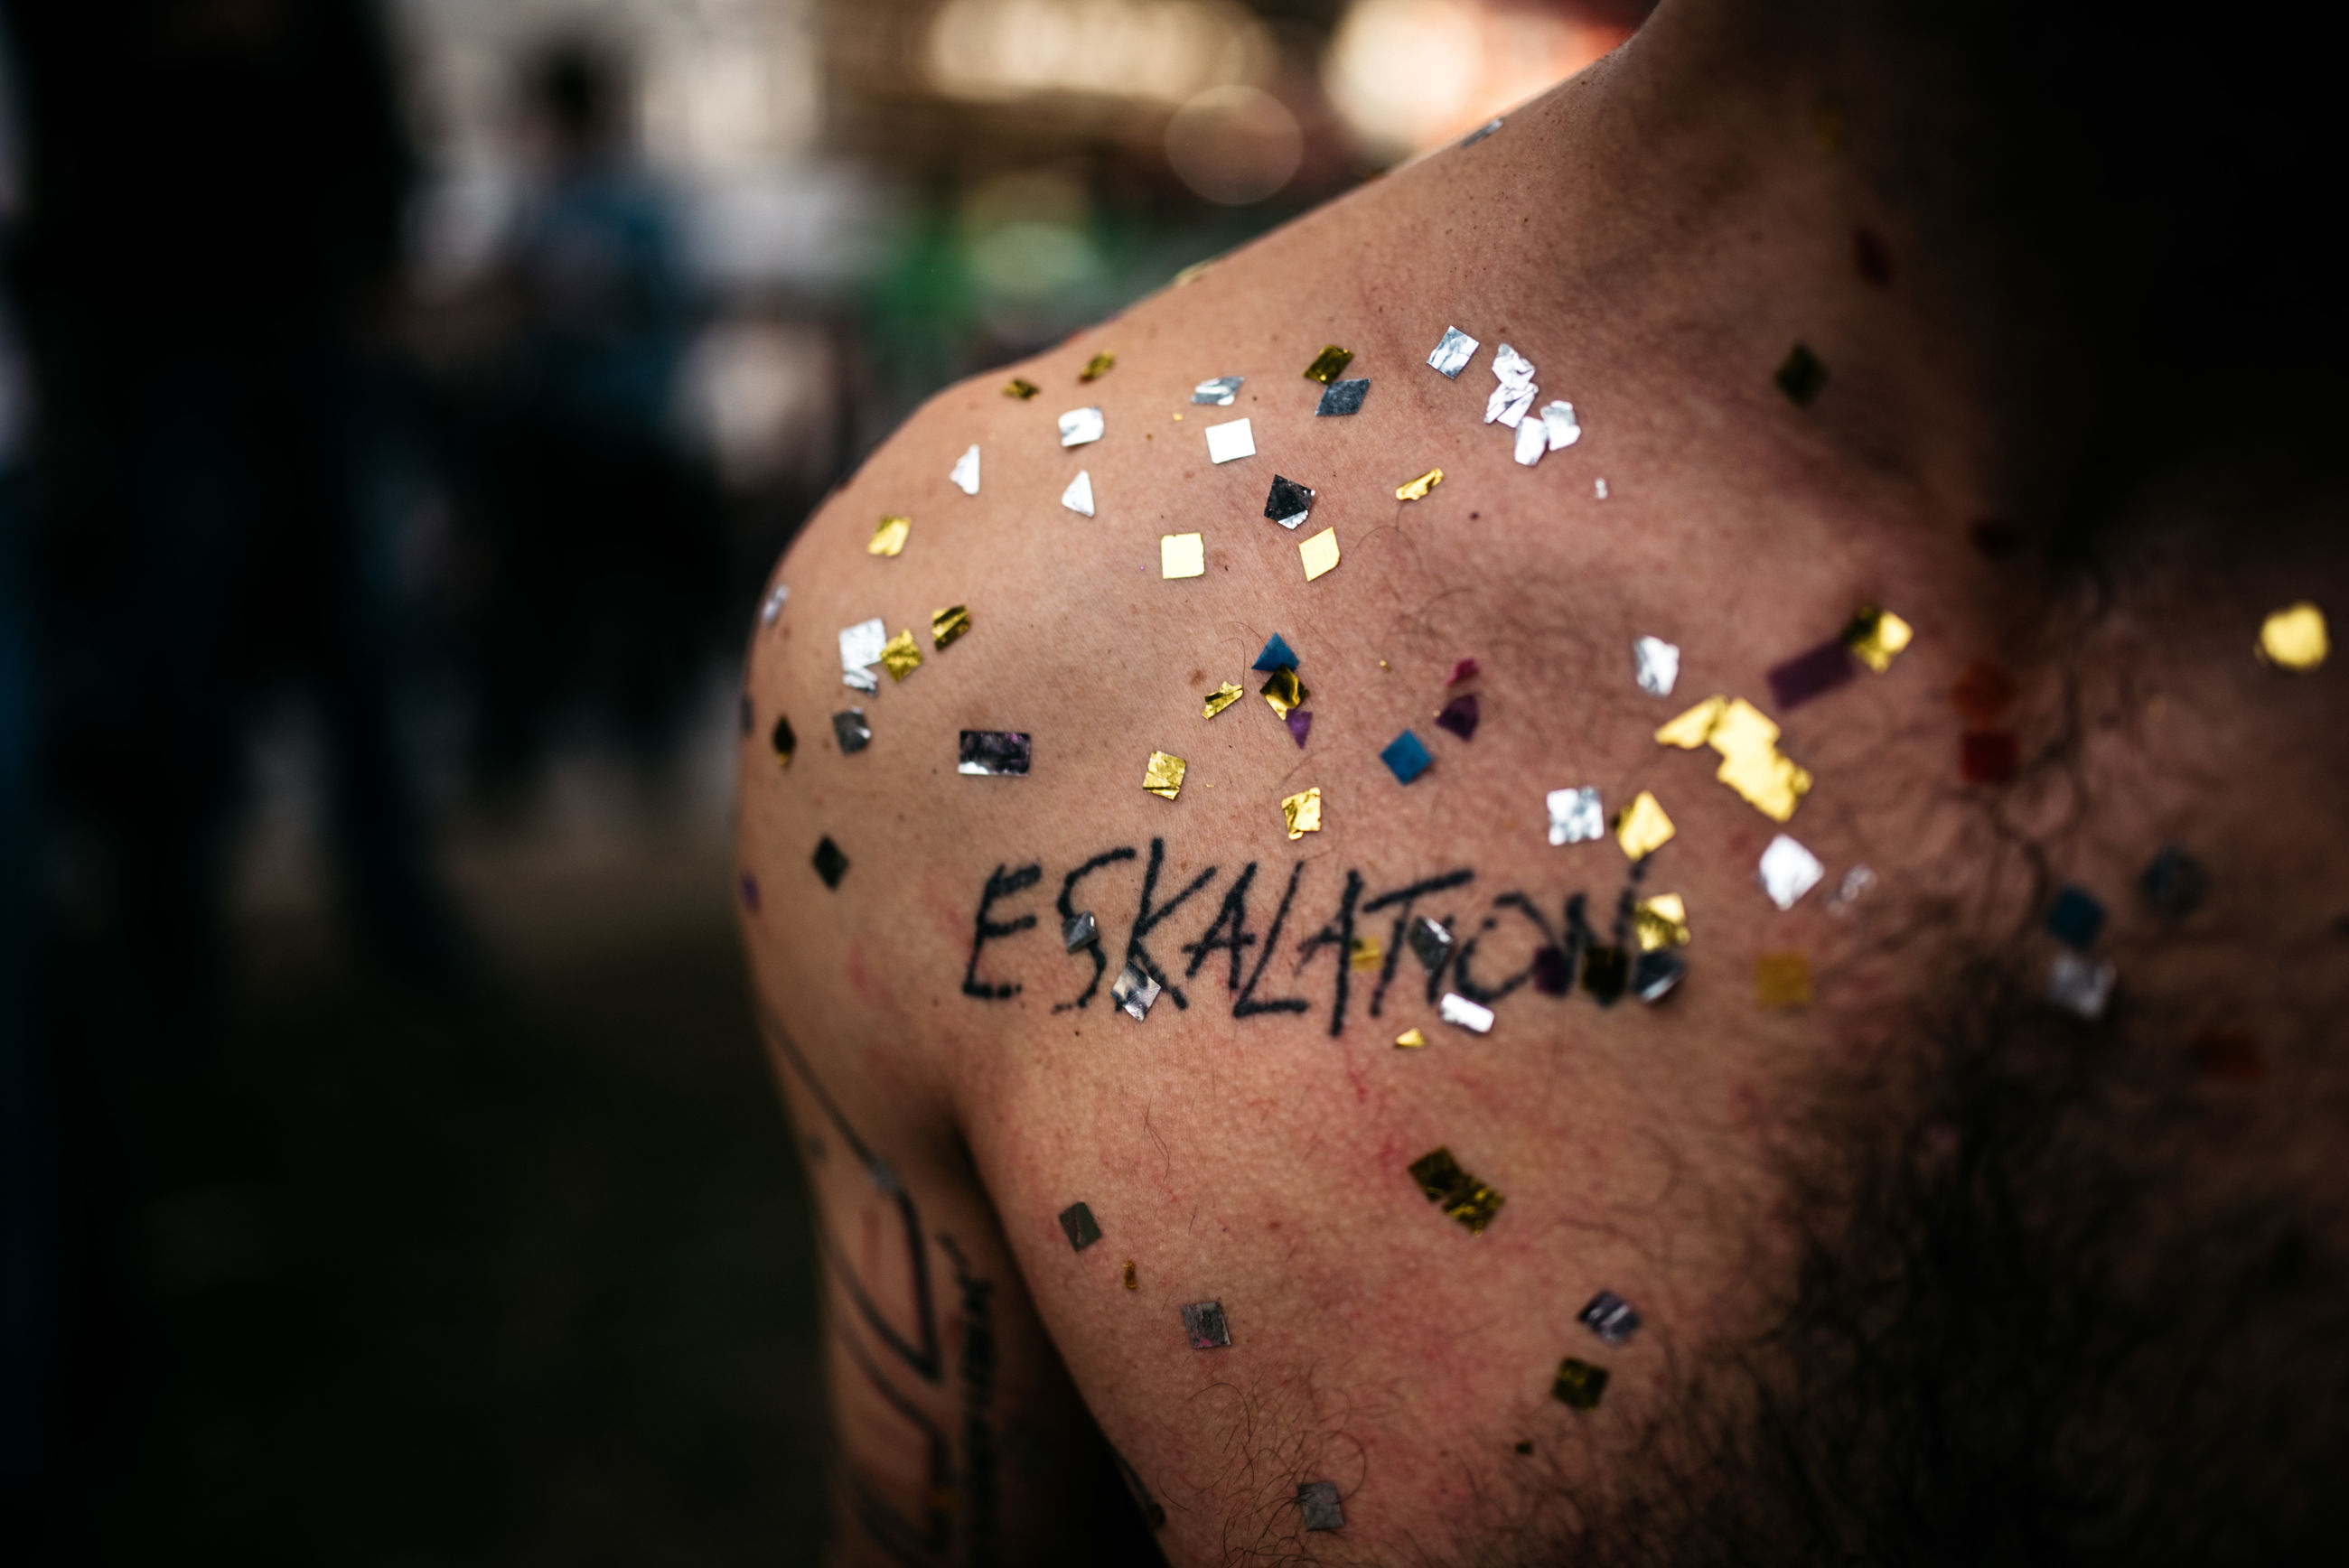 close-up, human body part, focus on foreground, body part, skin, one person, real people, human skin, tattoo, creativity, indoors, selective focus, text, food and drink, food, limb, day, human limb, brown, temptation